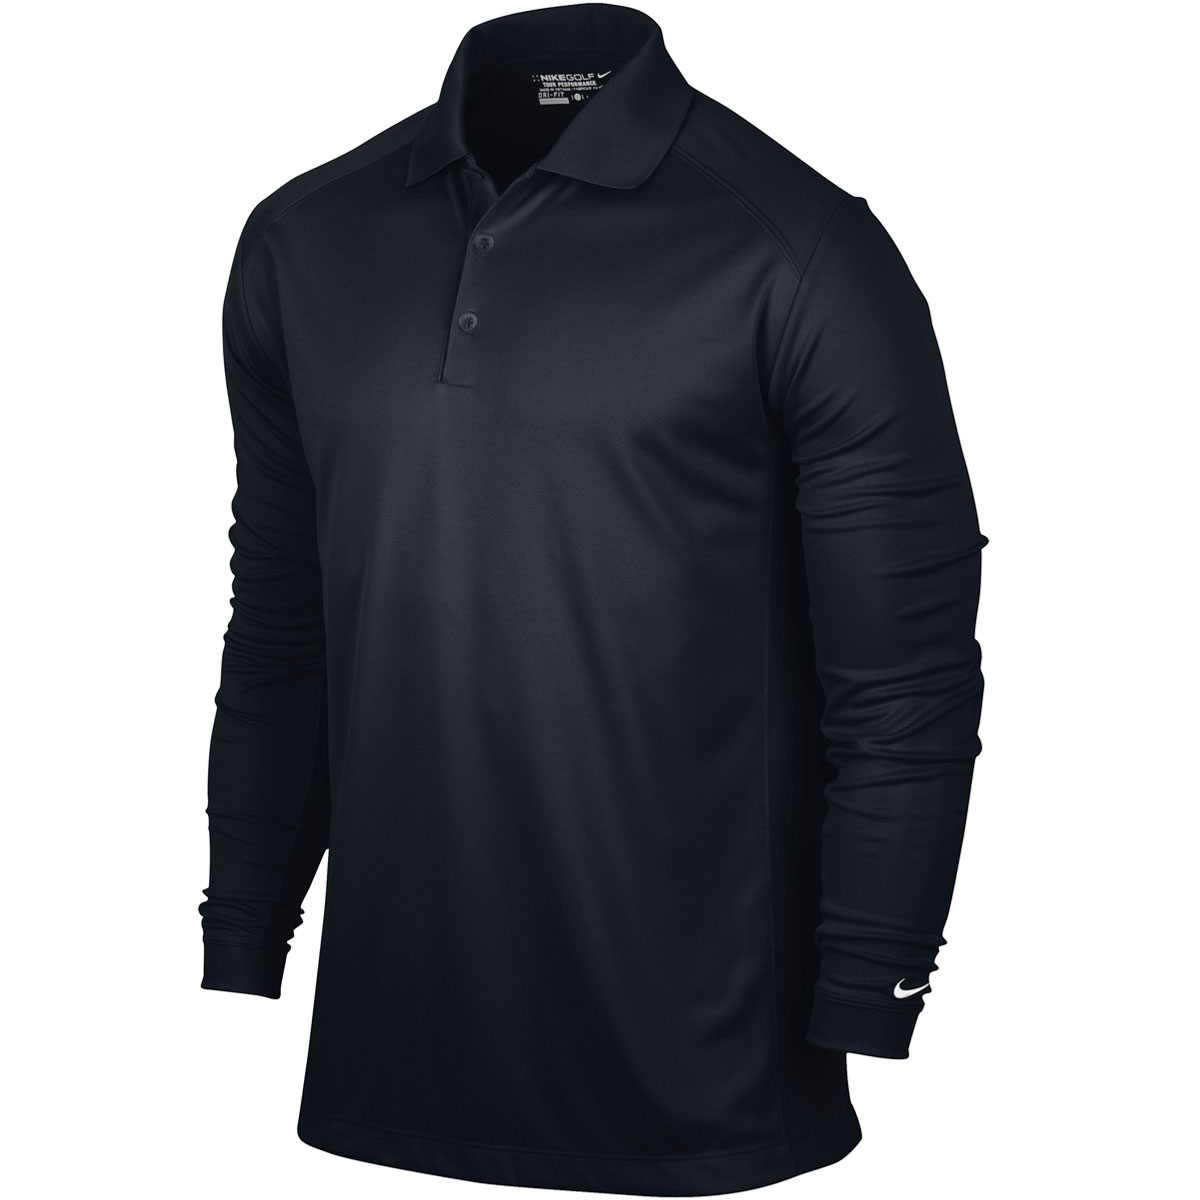 Nike Golf Men's Dri FIT Victory Long Sleeve Polo Shirt | eBay